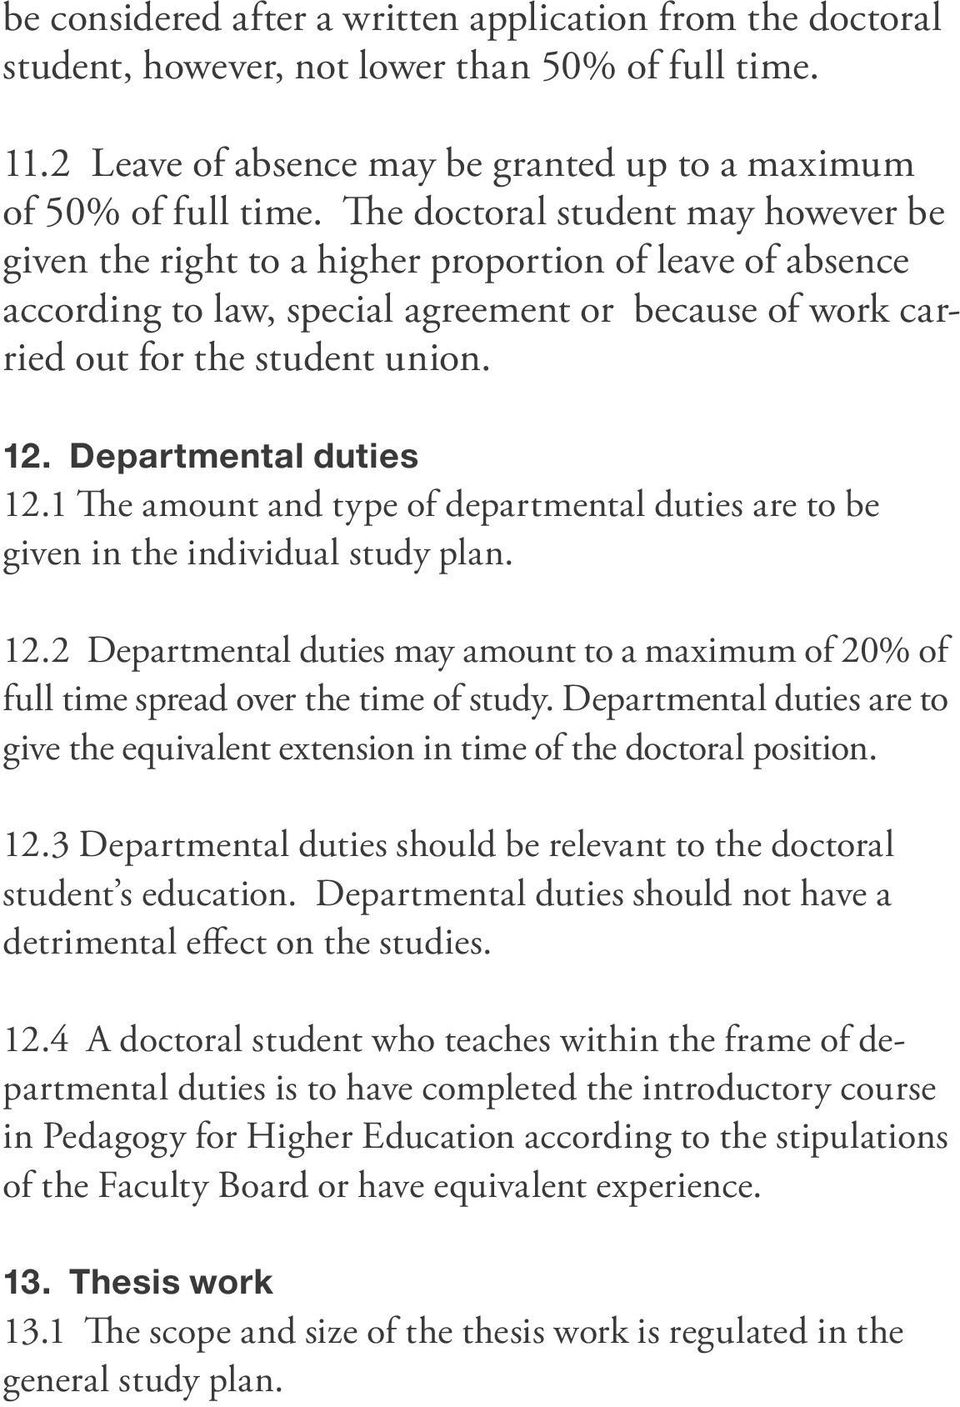 Departmental duties 12.1 The amount and type of departmental duties are to be given in the individual study plan. 12.2 Departmental duties may amount to a maximum of 20% of full time spread over the time of study.